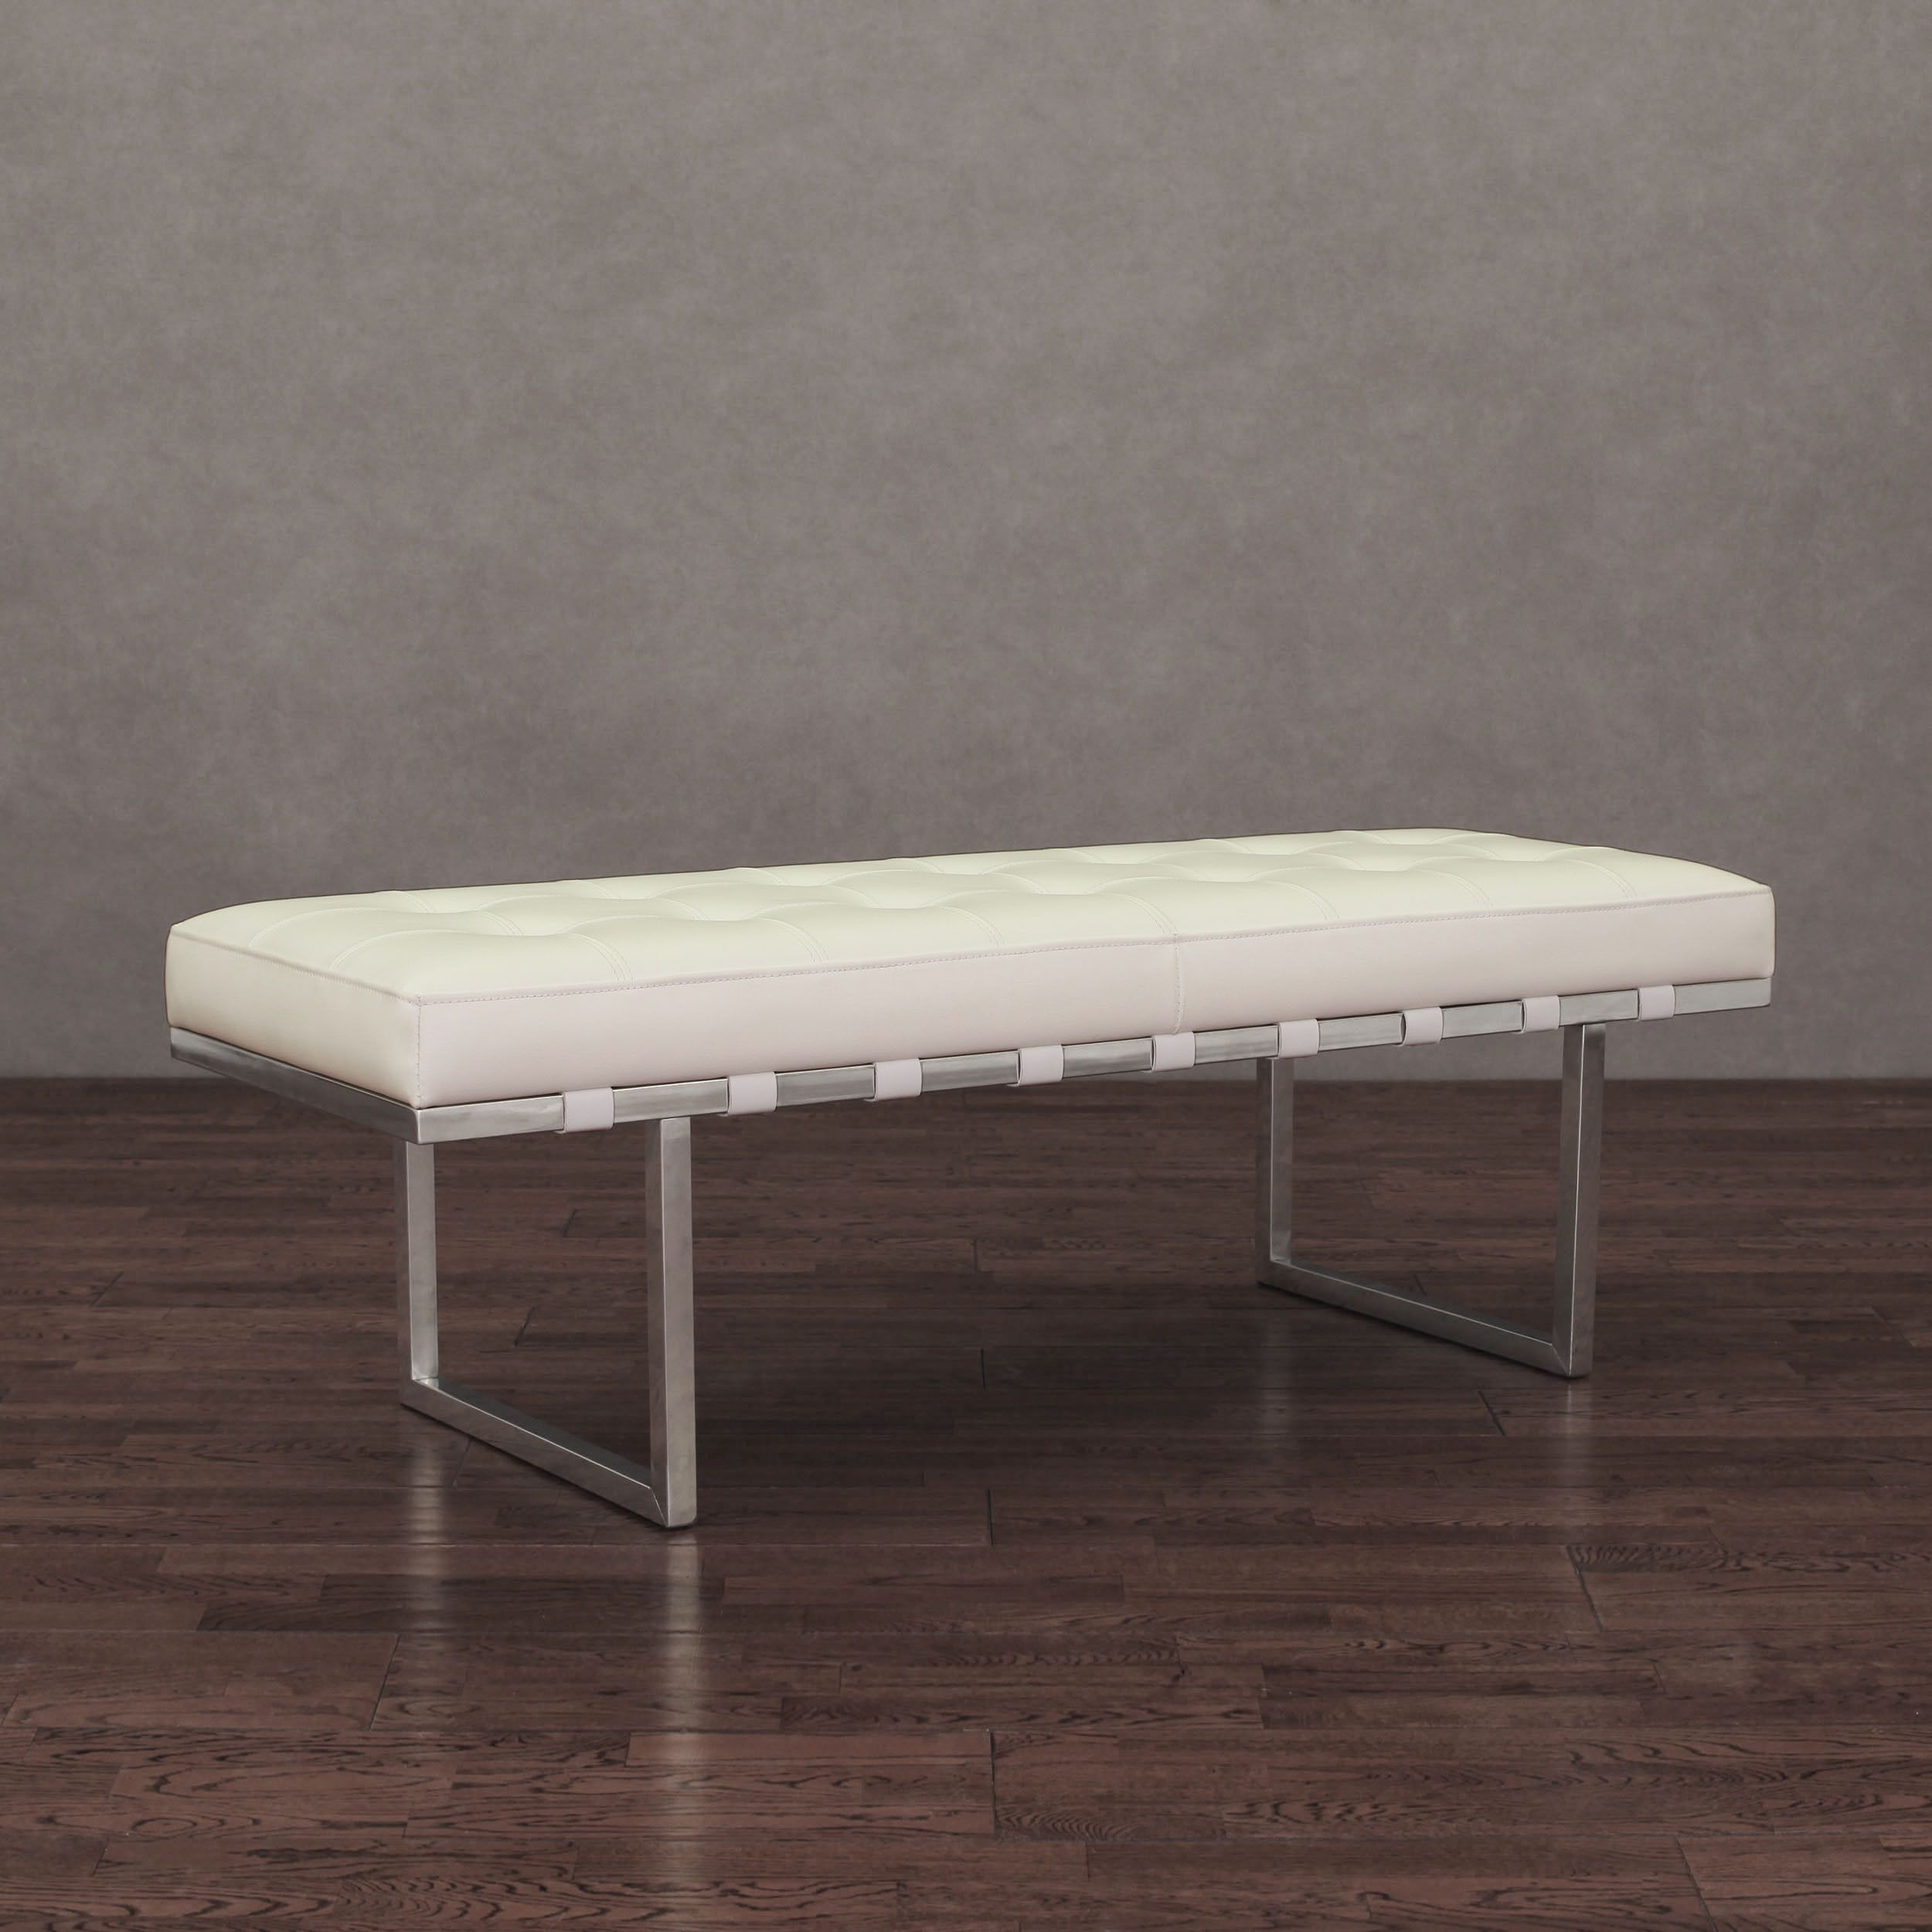 Leather Benches Modern Part - 32: Andalucía White And Stainless Steel Modern Leather Button-tufted Bench By I  Love Living